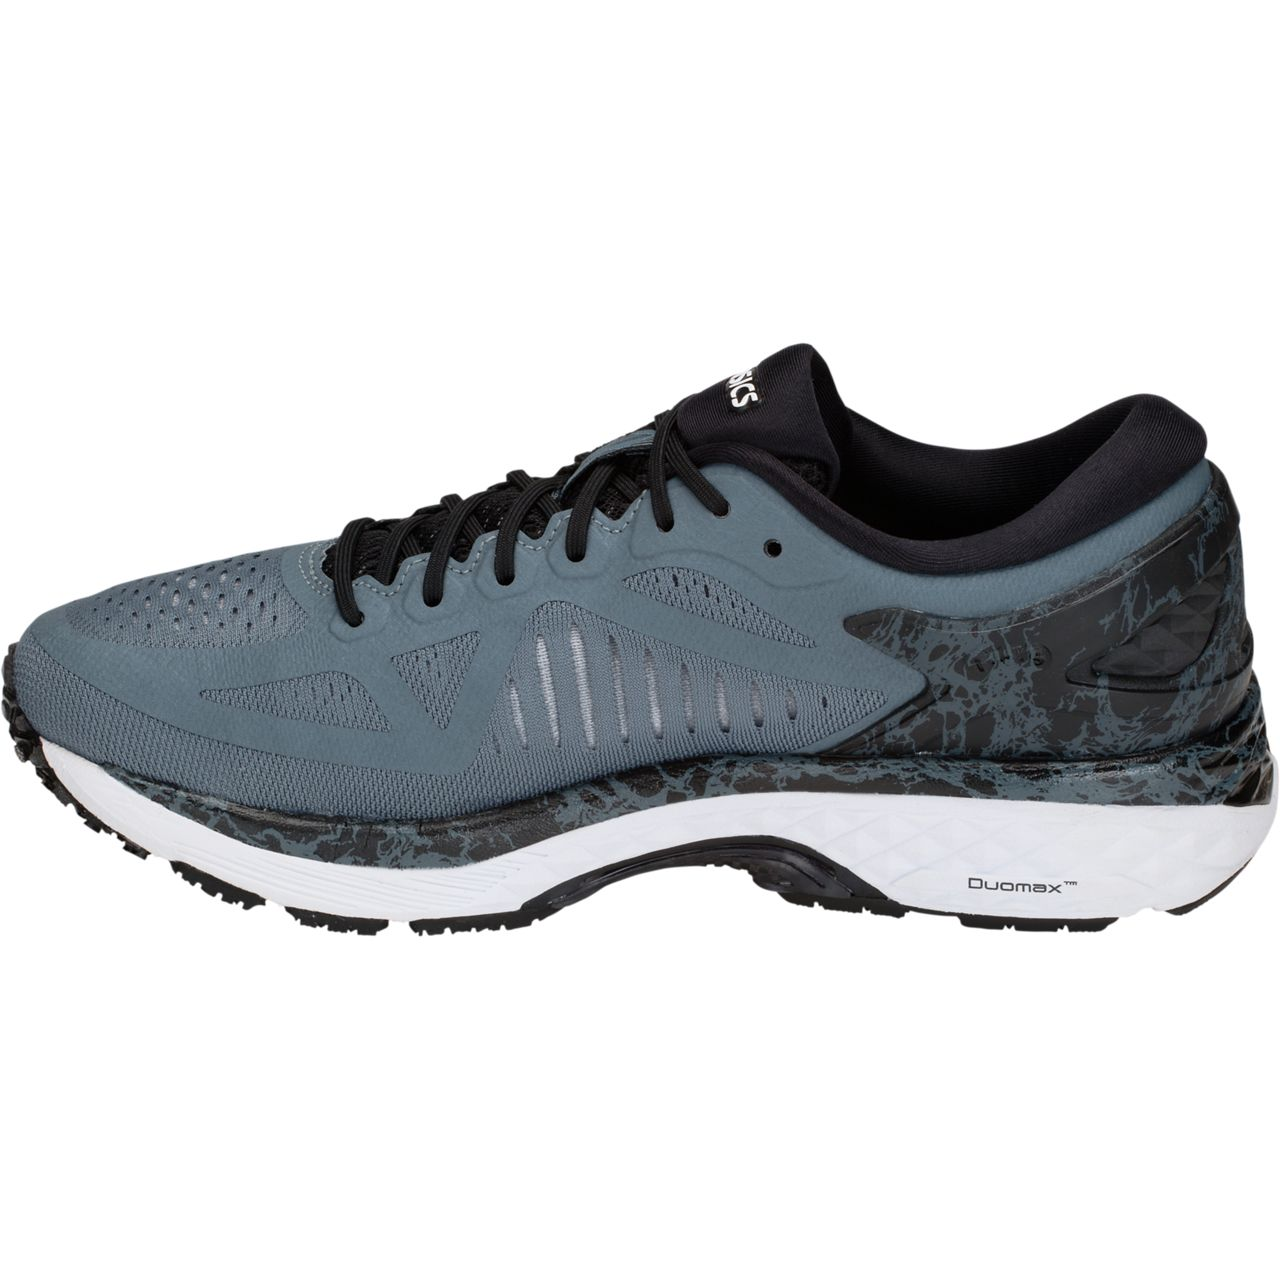 Women s Metarun Running Shoe - Iron Clad Iron Clad – Gazelle Sports 1e7d9744f1e7b